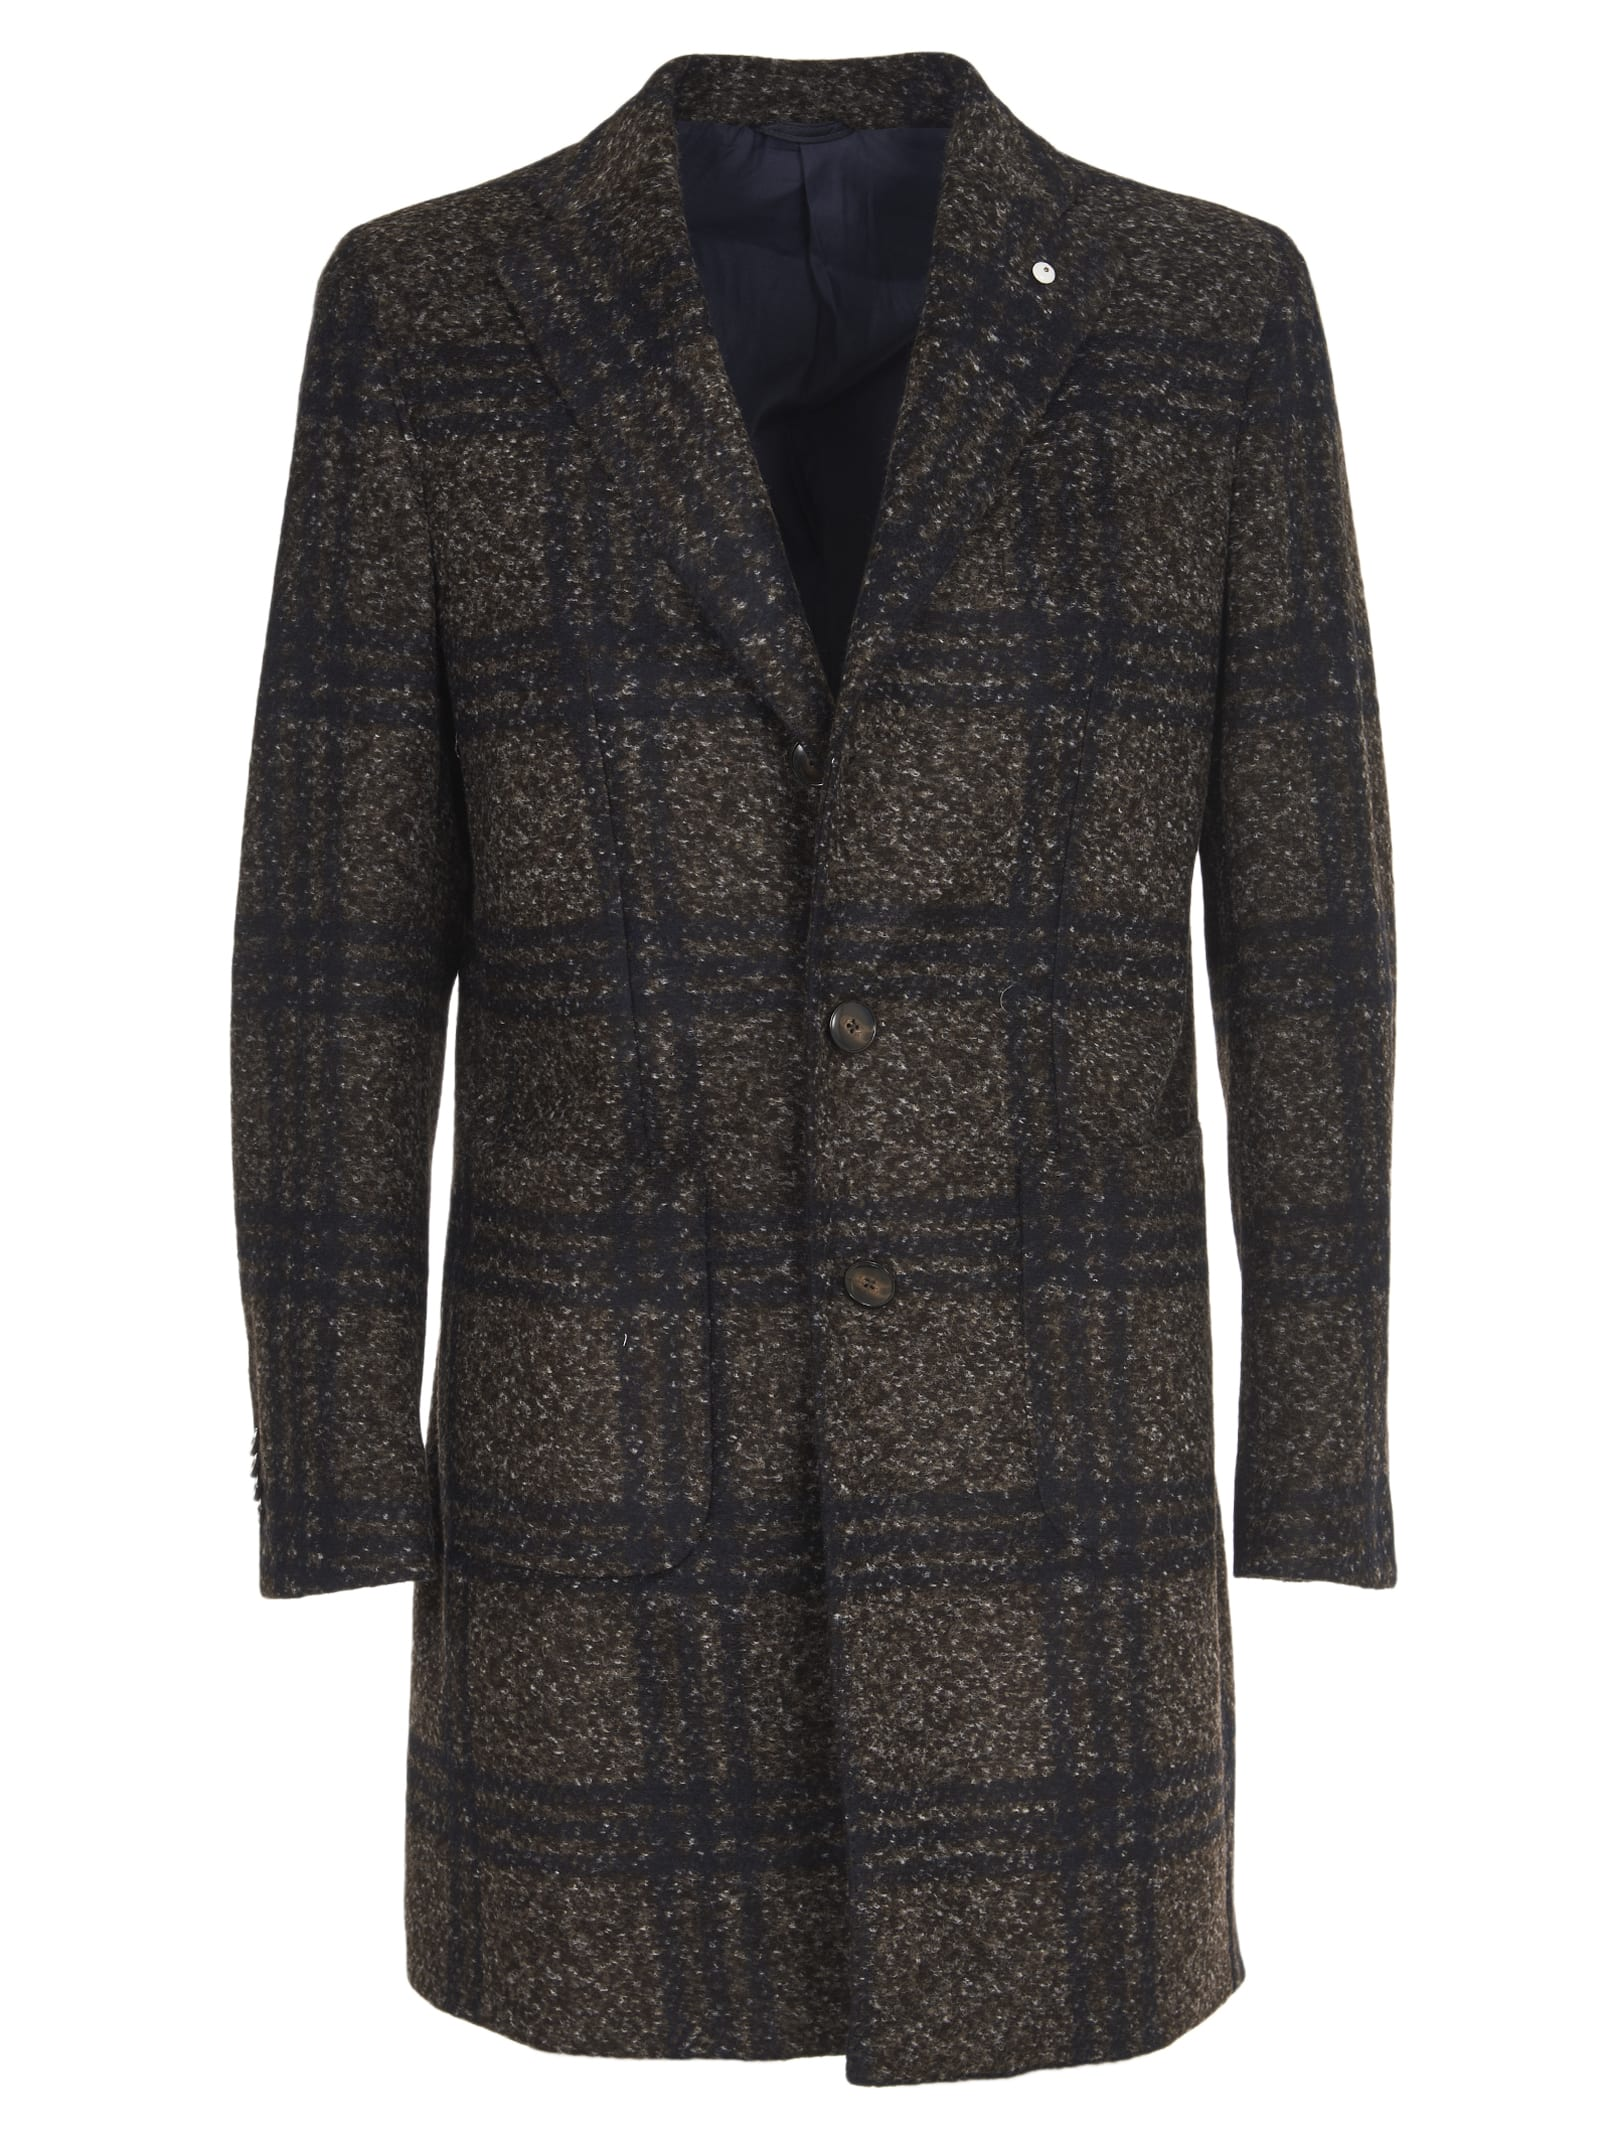 1911 Checked Blue And Brown Coat